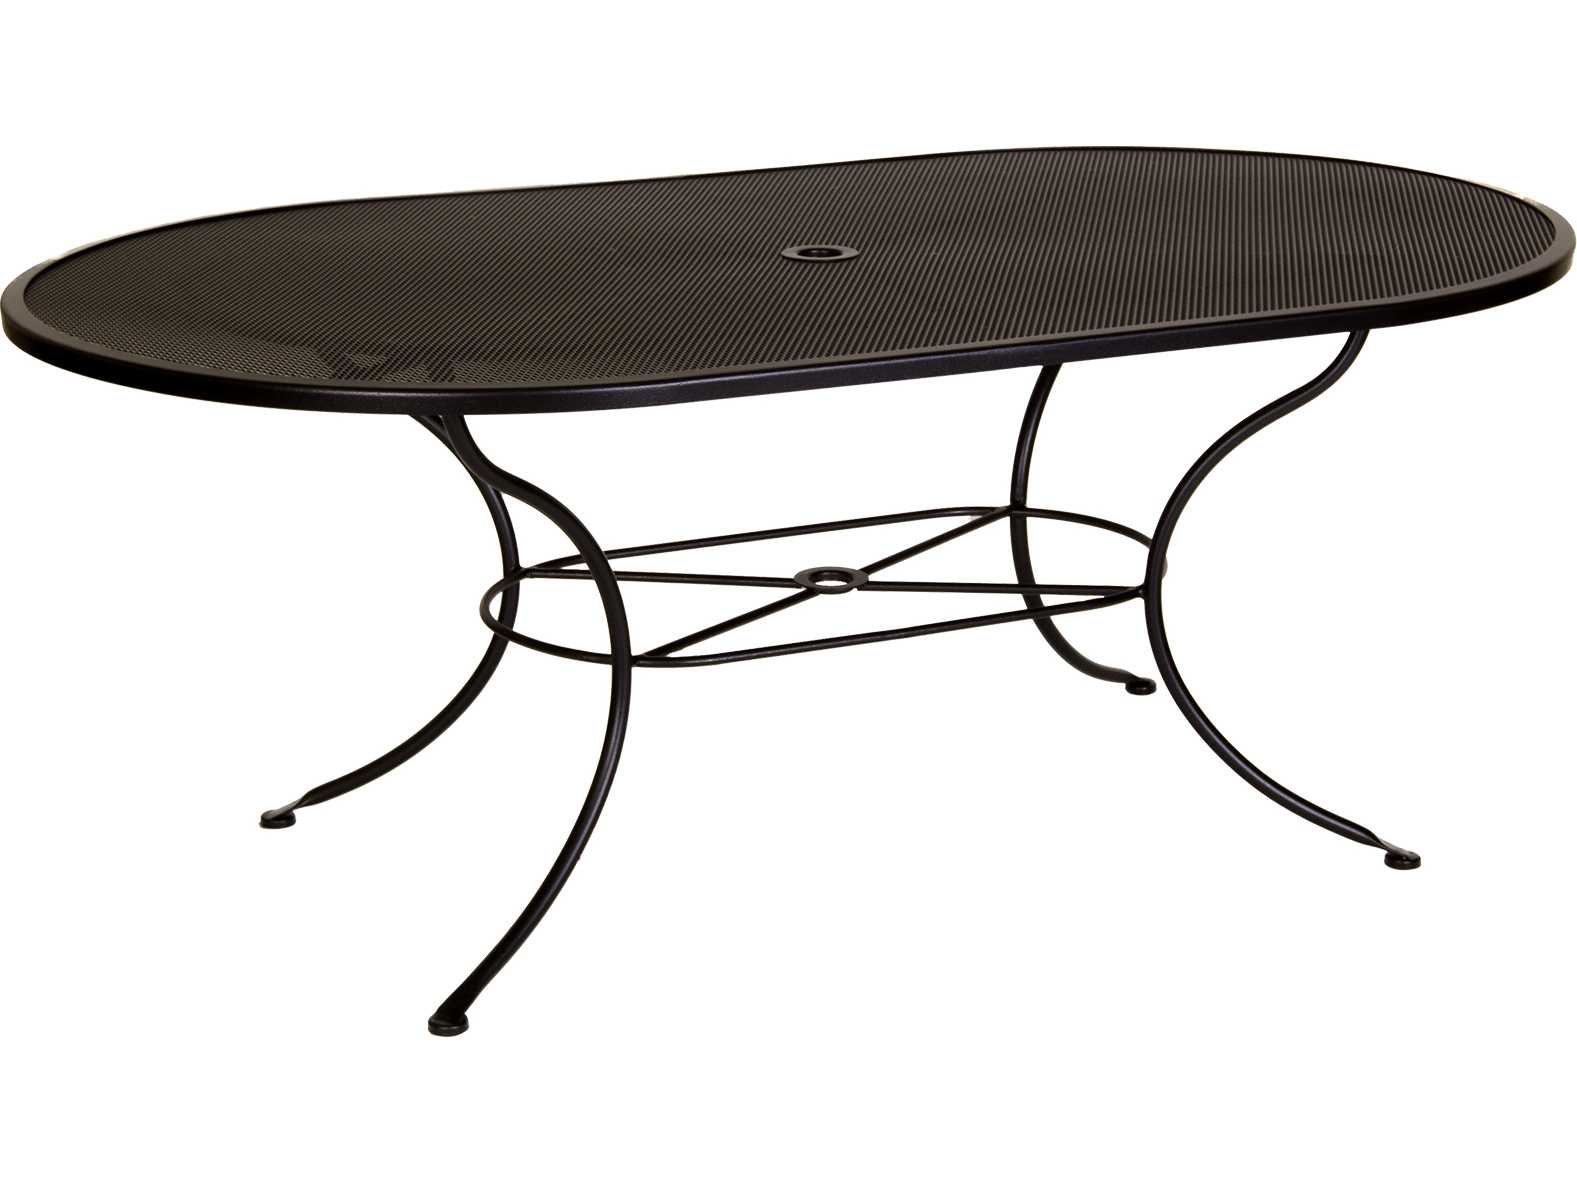 Home Patio Tables Dining Tables Shop All OW Lee